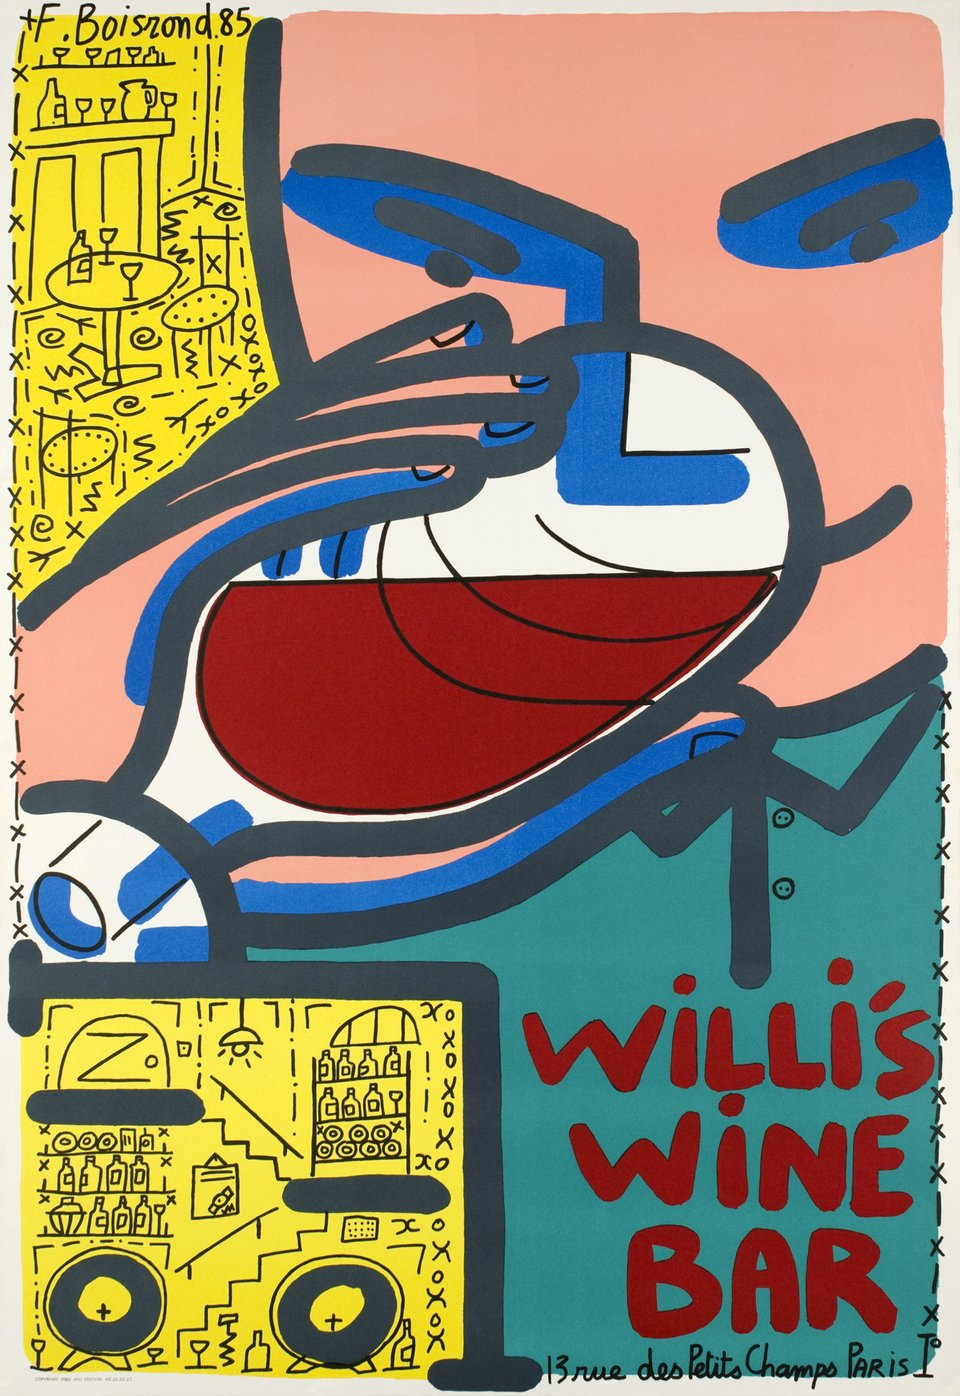 Willi's Wine Bar – Affiche ancienne – F. BOISROND – 1985